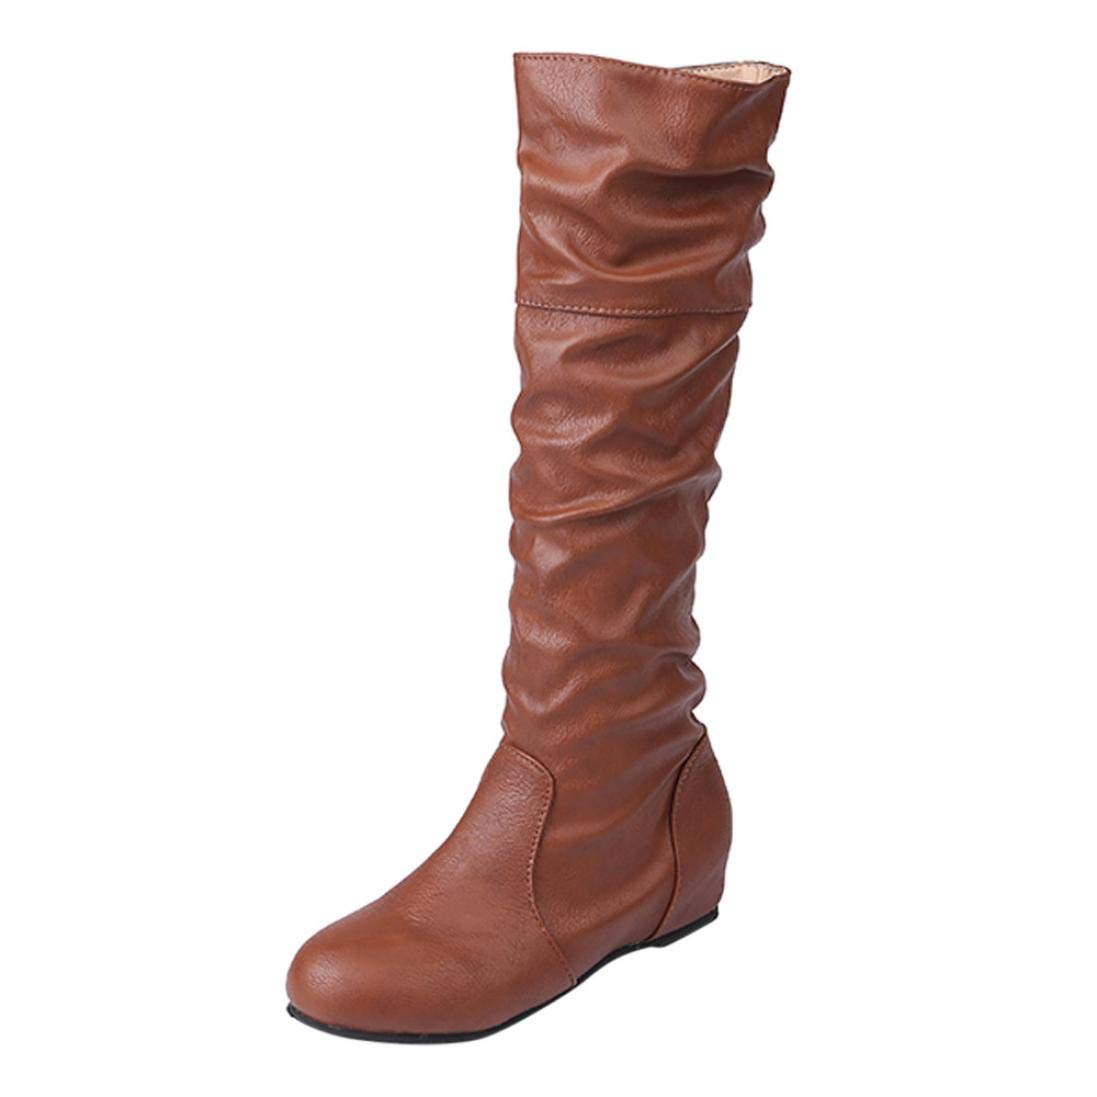 Familizo Bottes Bottes Femme, Plates Hiver Femme, Bottes Longues Pointues Bottes Longues Femme Marron c55dc00 - therethere.space